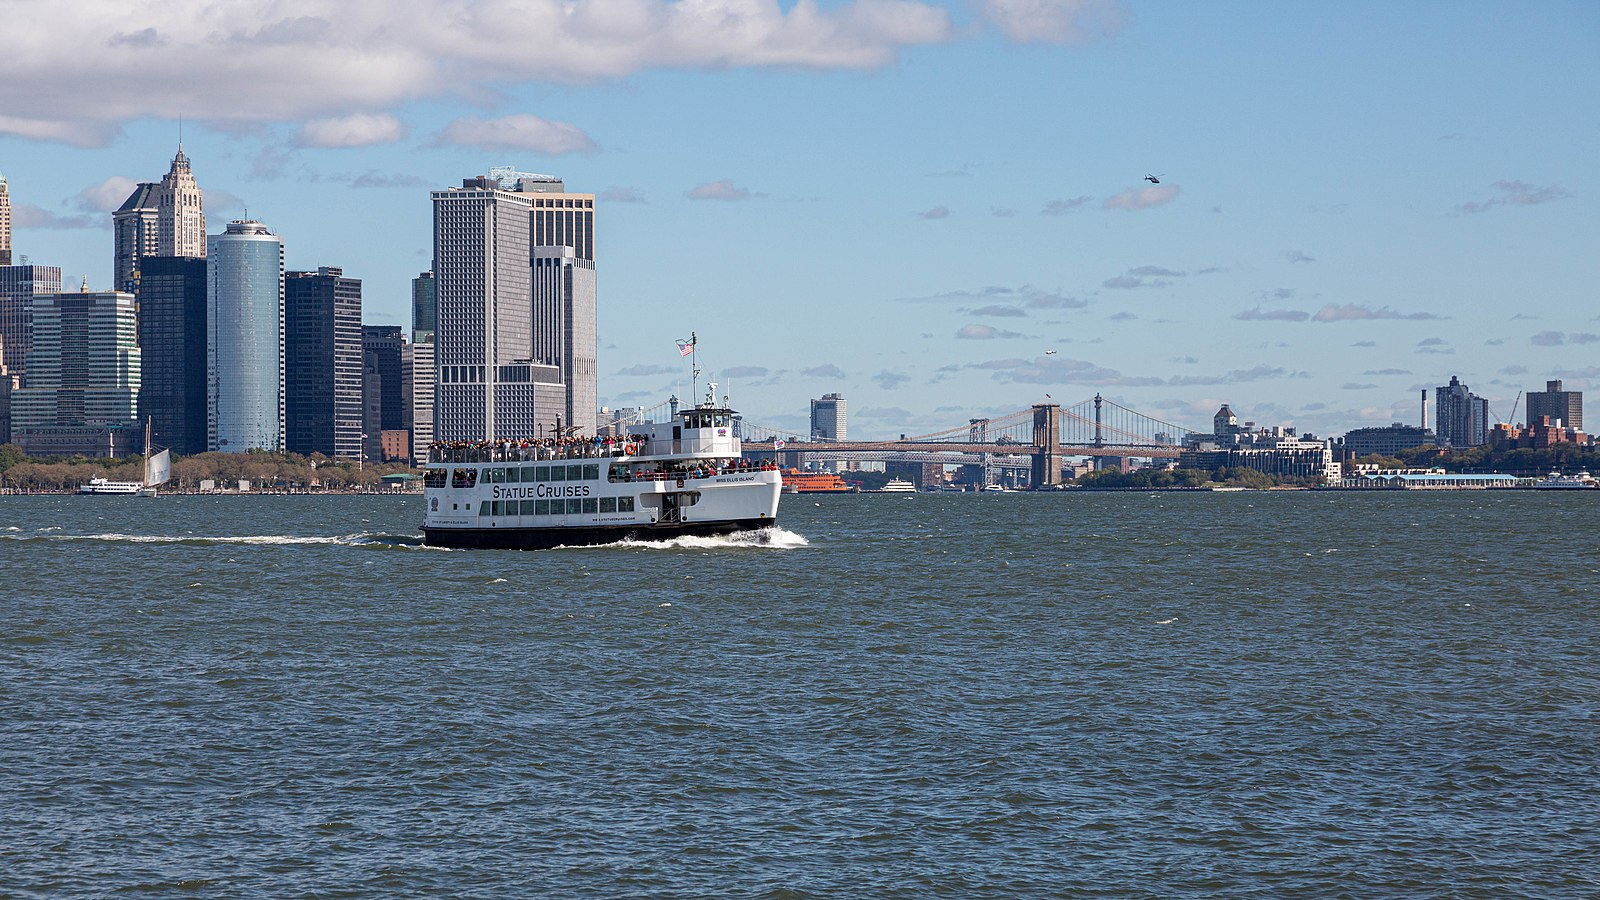 Statue Cruises on the Hudson